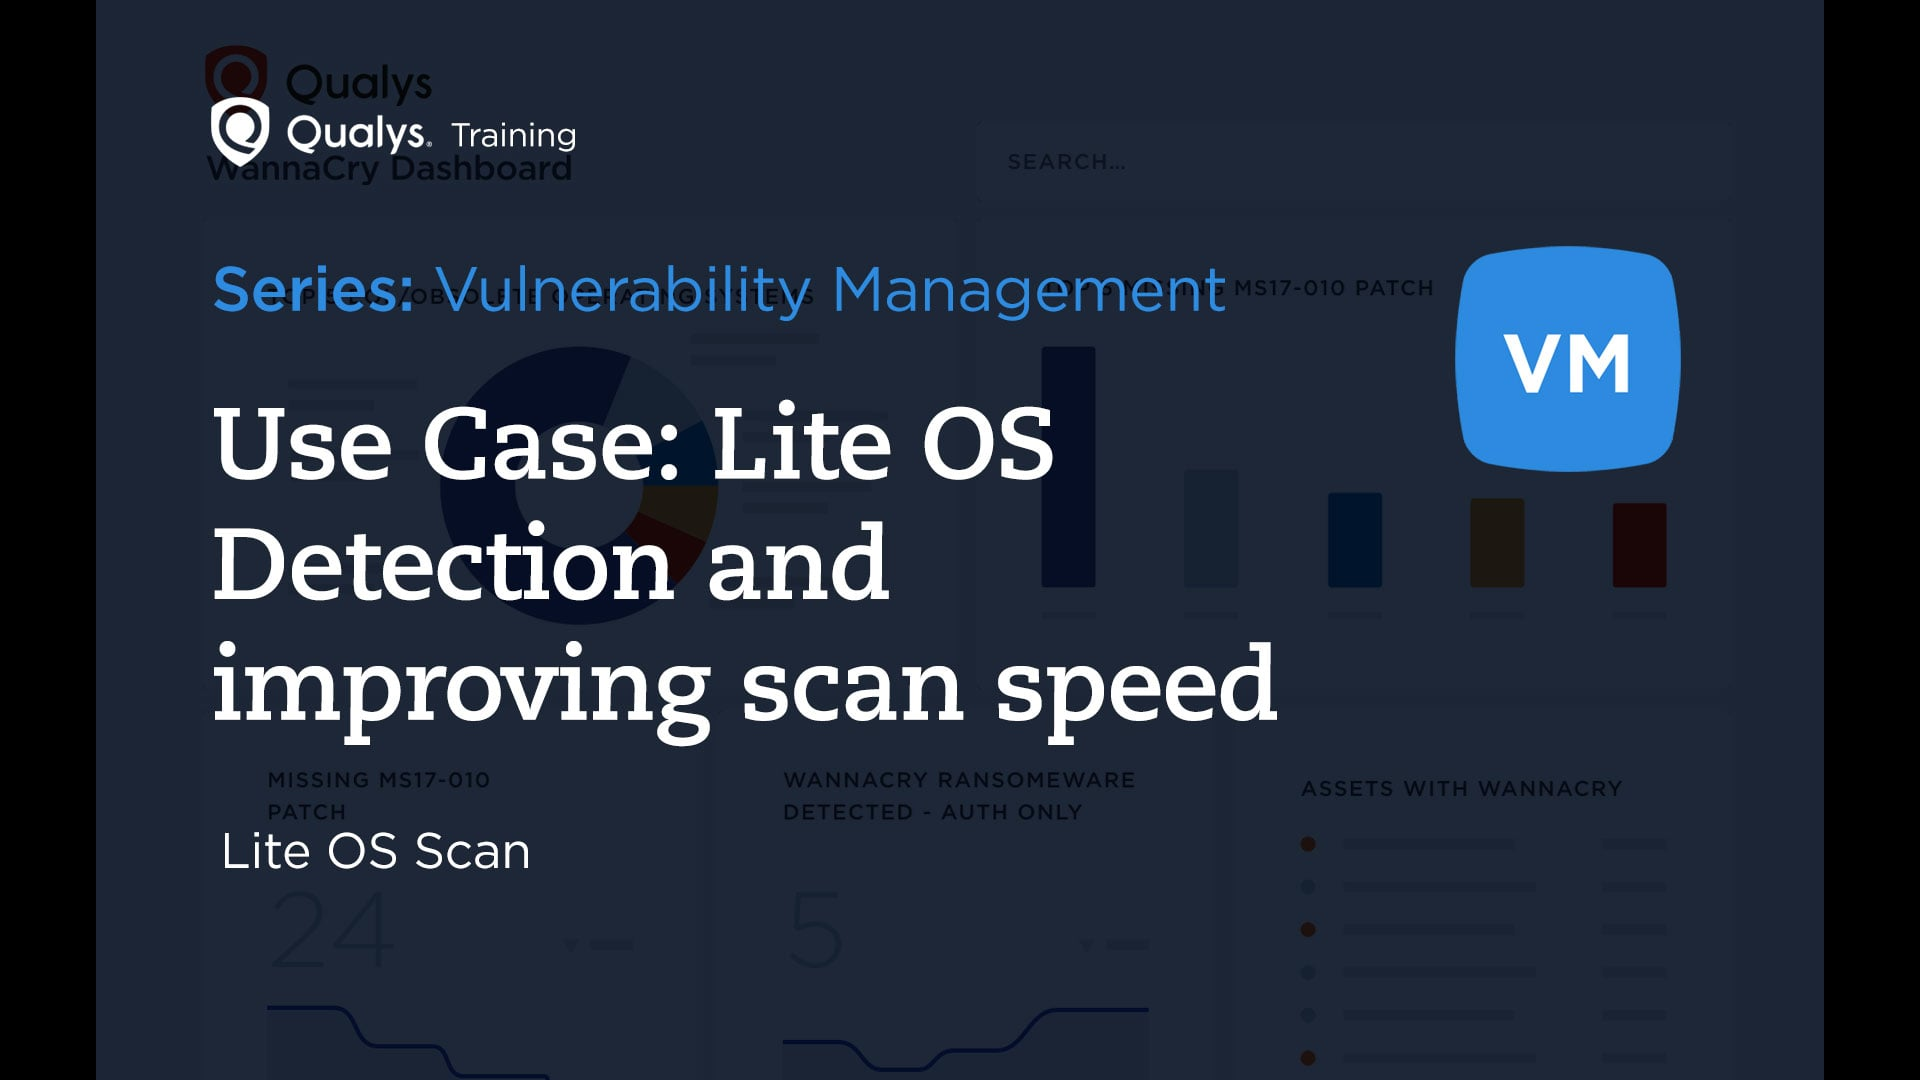 Use Case: Lite OS Detection and improving scan speed